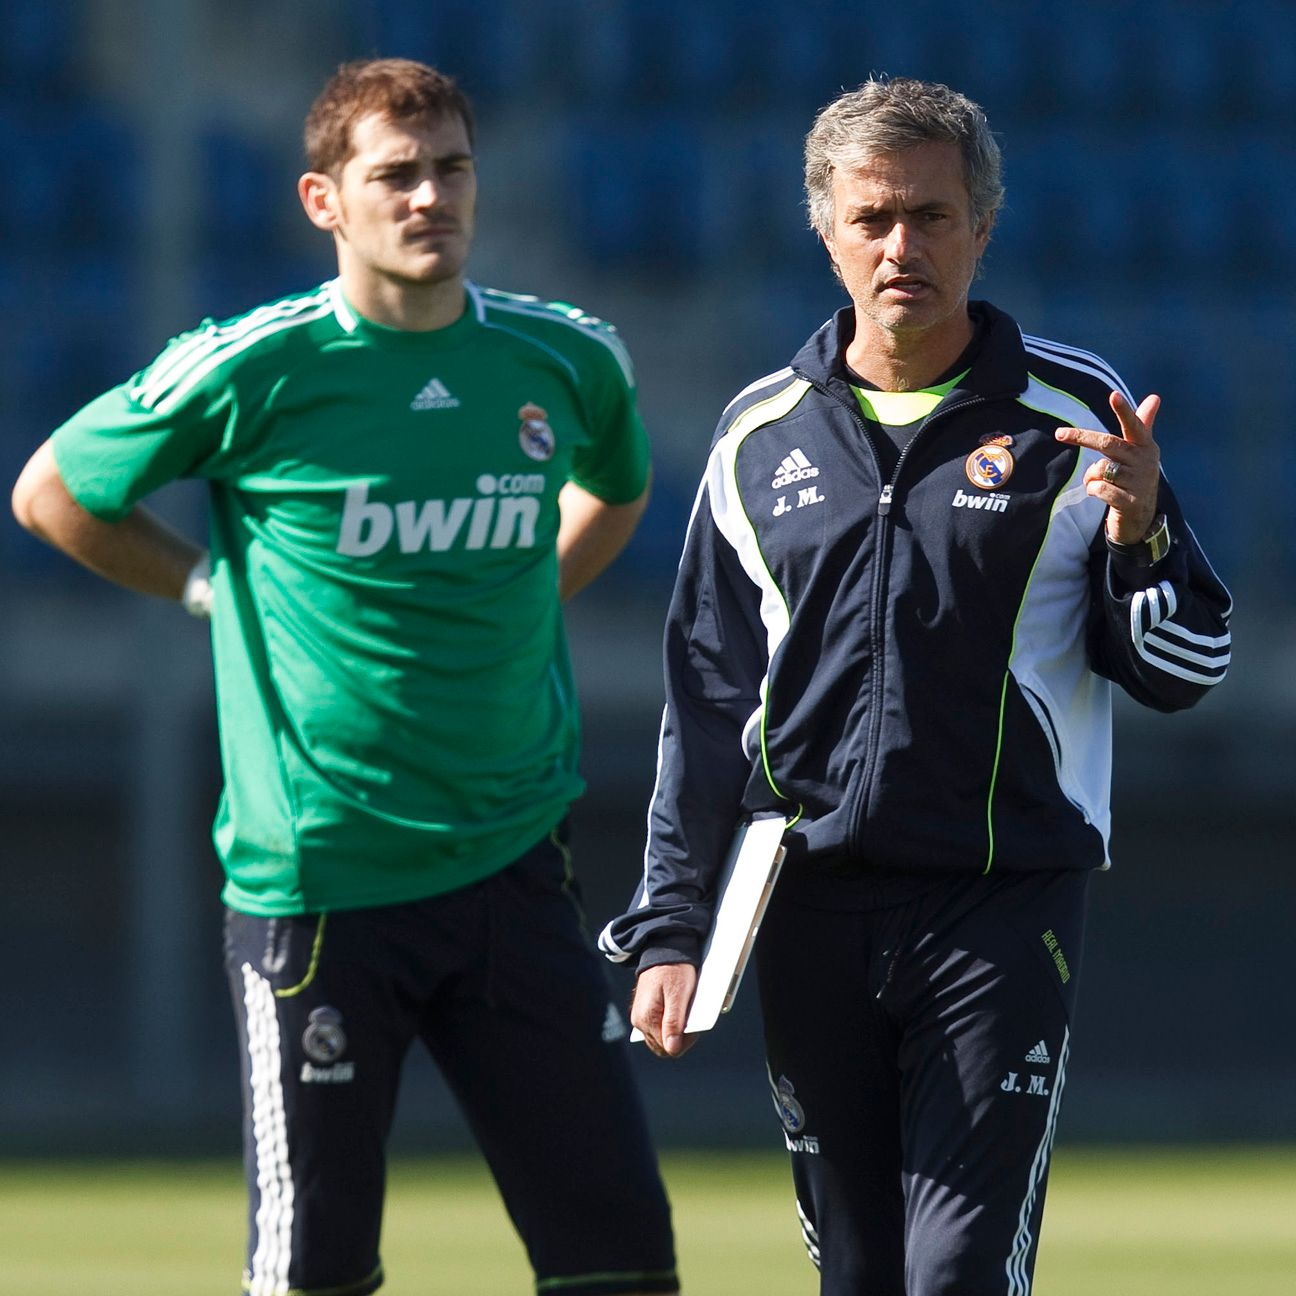 Things were never the same for Casillas at the Bernabeu after Jose Mourinho dropped him to the bench in December 2012.